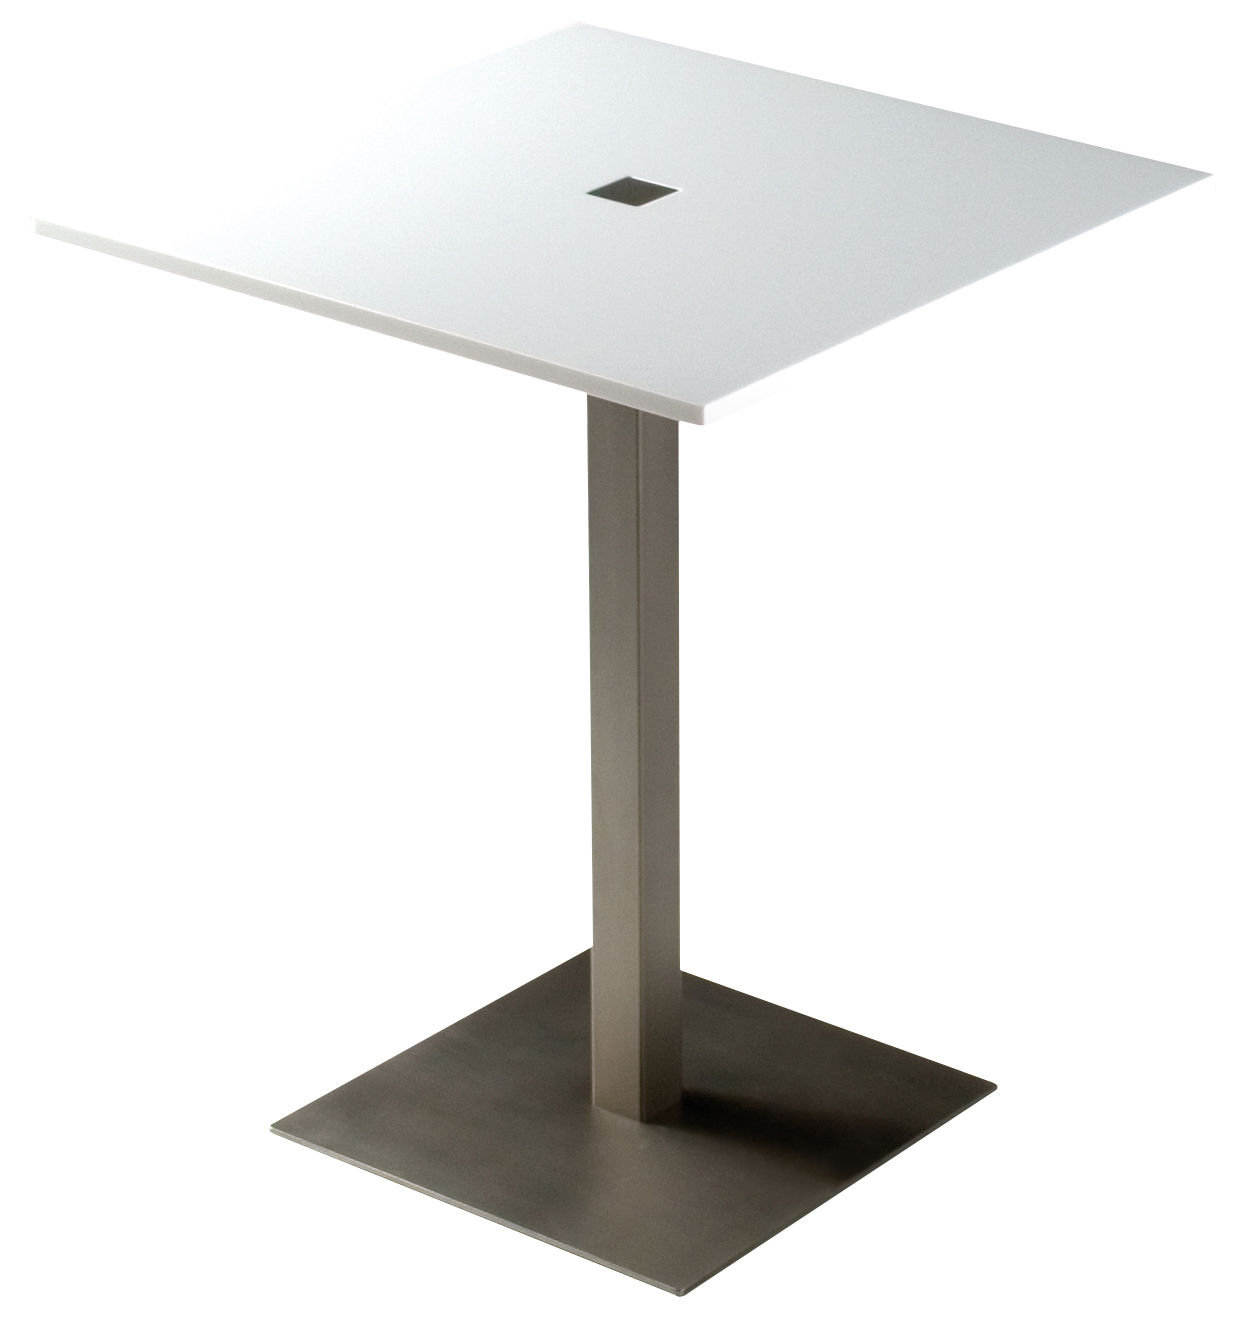 Furniture - Dining Tables - Slam Table carrée by Zeus - Glossy white - 60x60 cm - Acrylic resin, Sandy steel